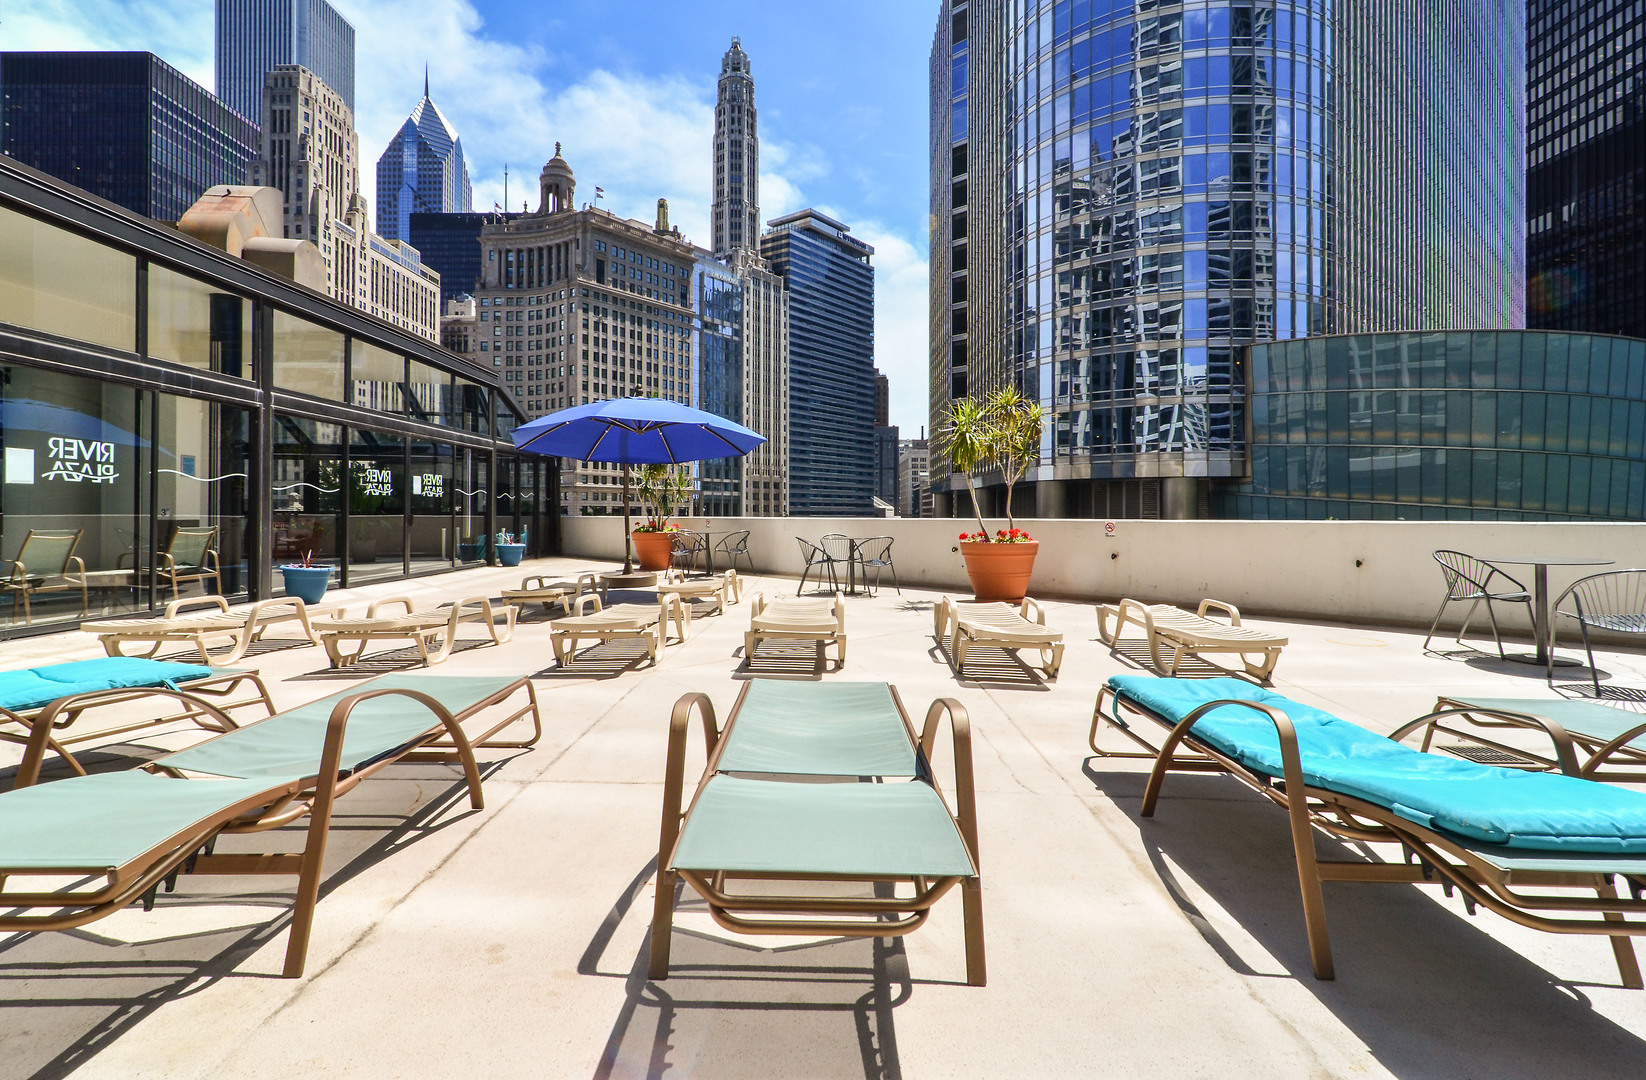 405 NORTH WABASH AVENUE #3106, CHICAGO, IL 60611  Photo 16